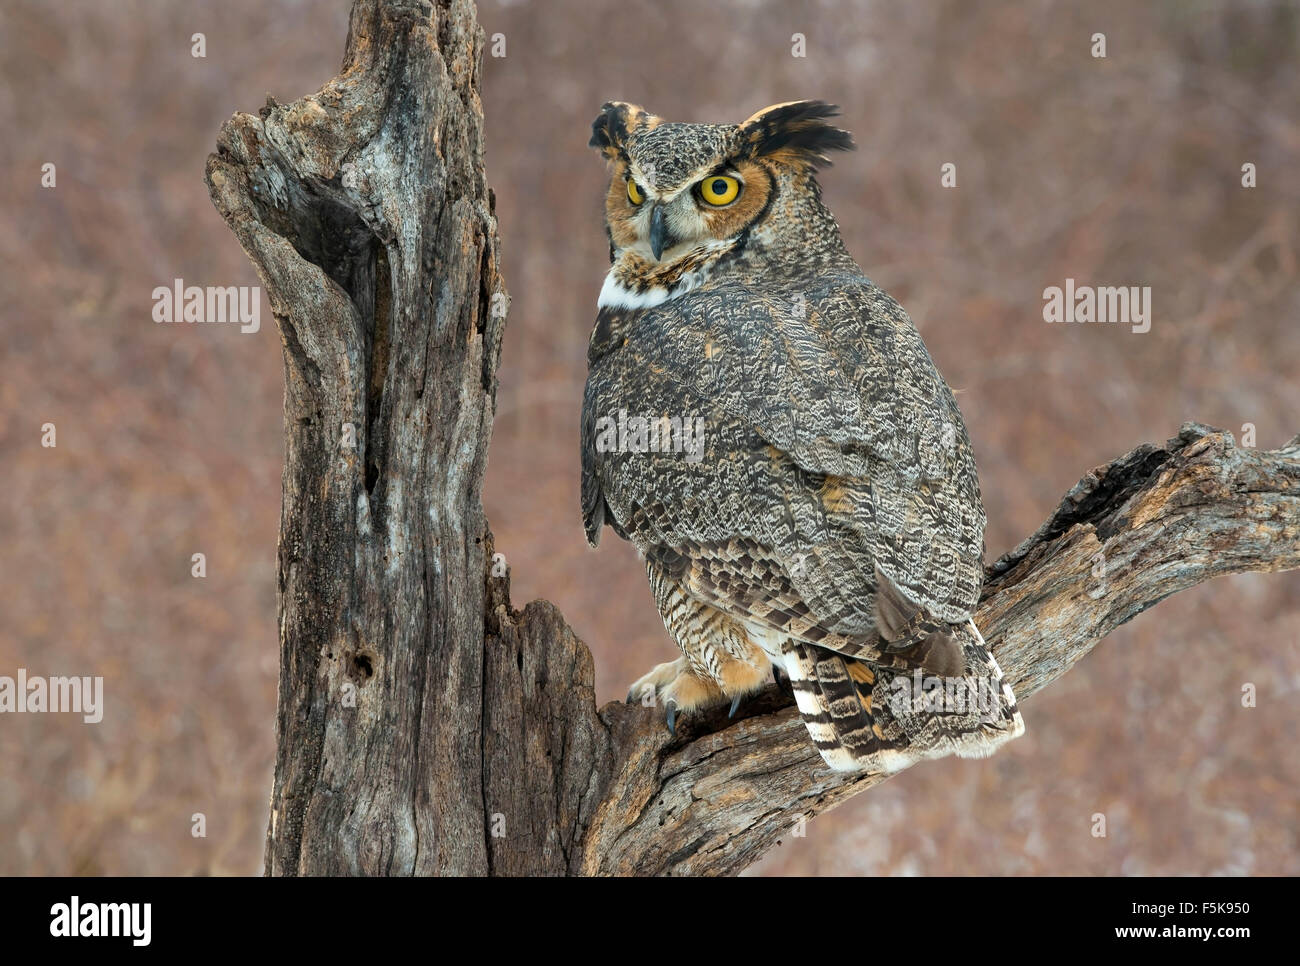 Great Horned Owl Bubo virginianus perched on stump Eastern North America - Stock Image